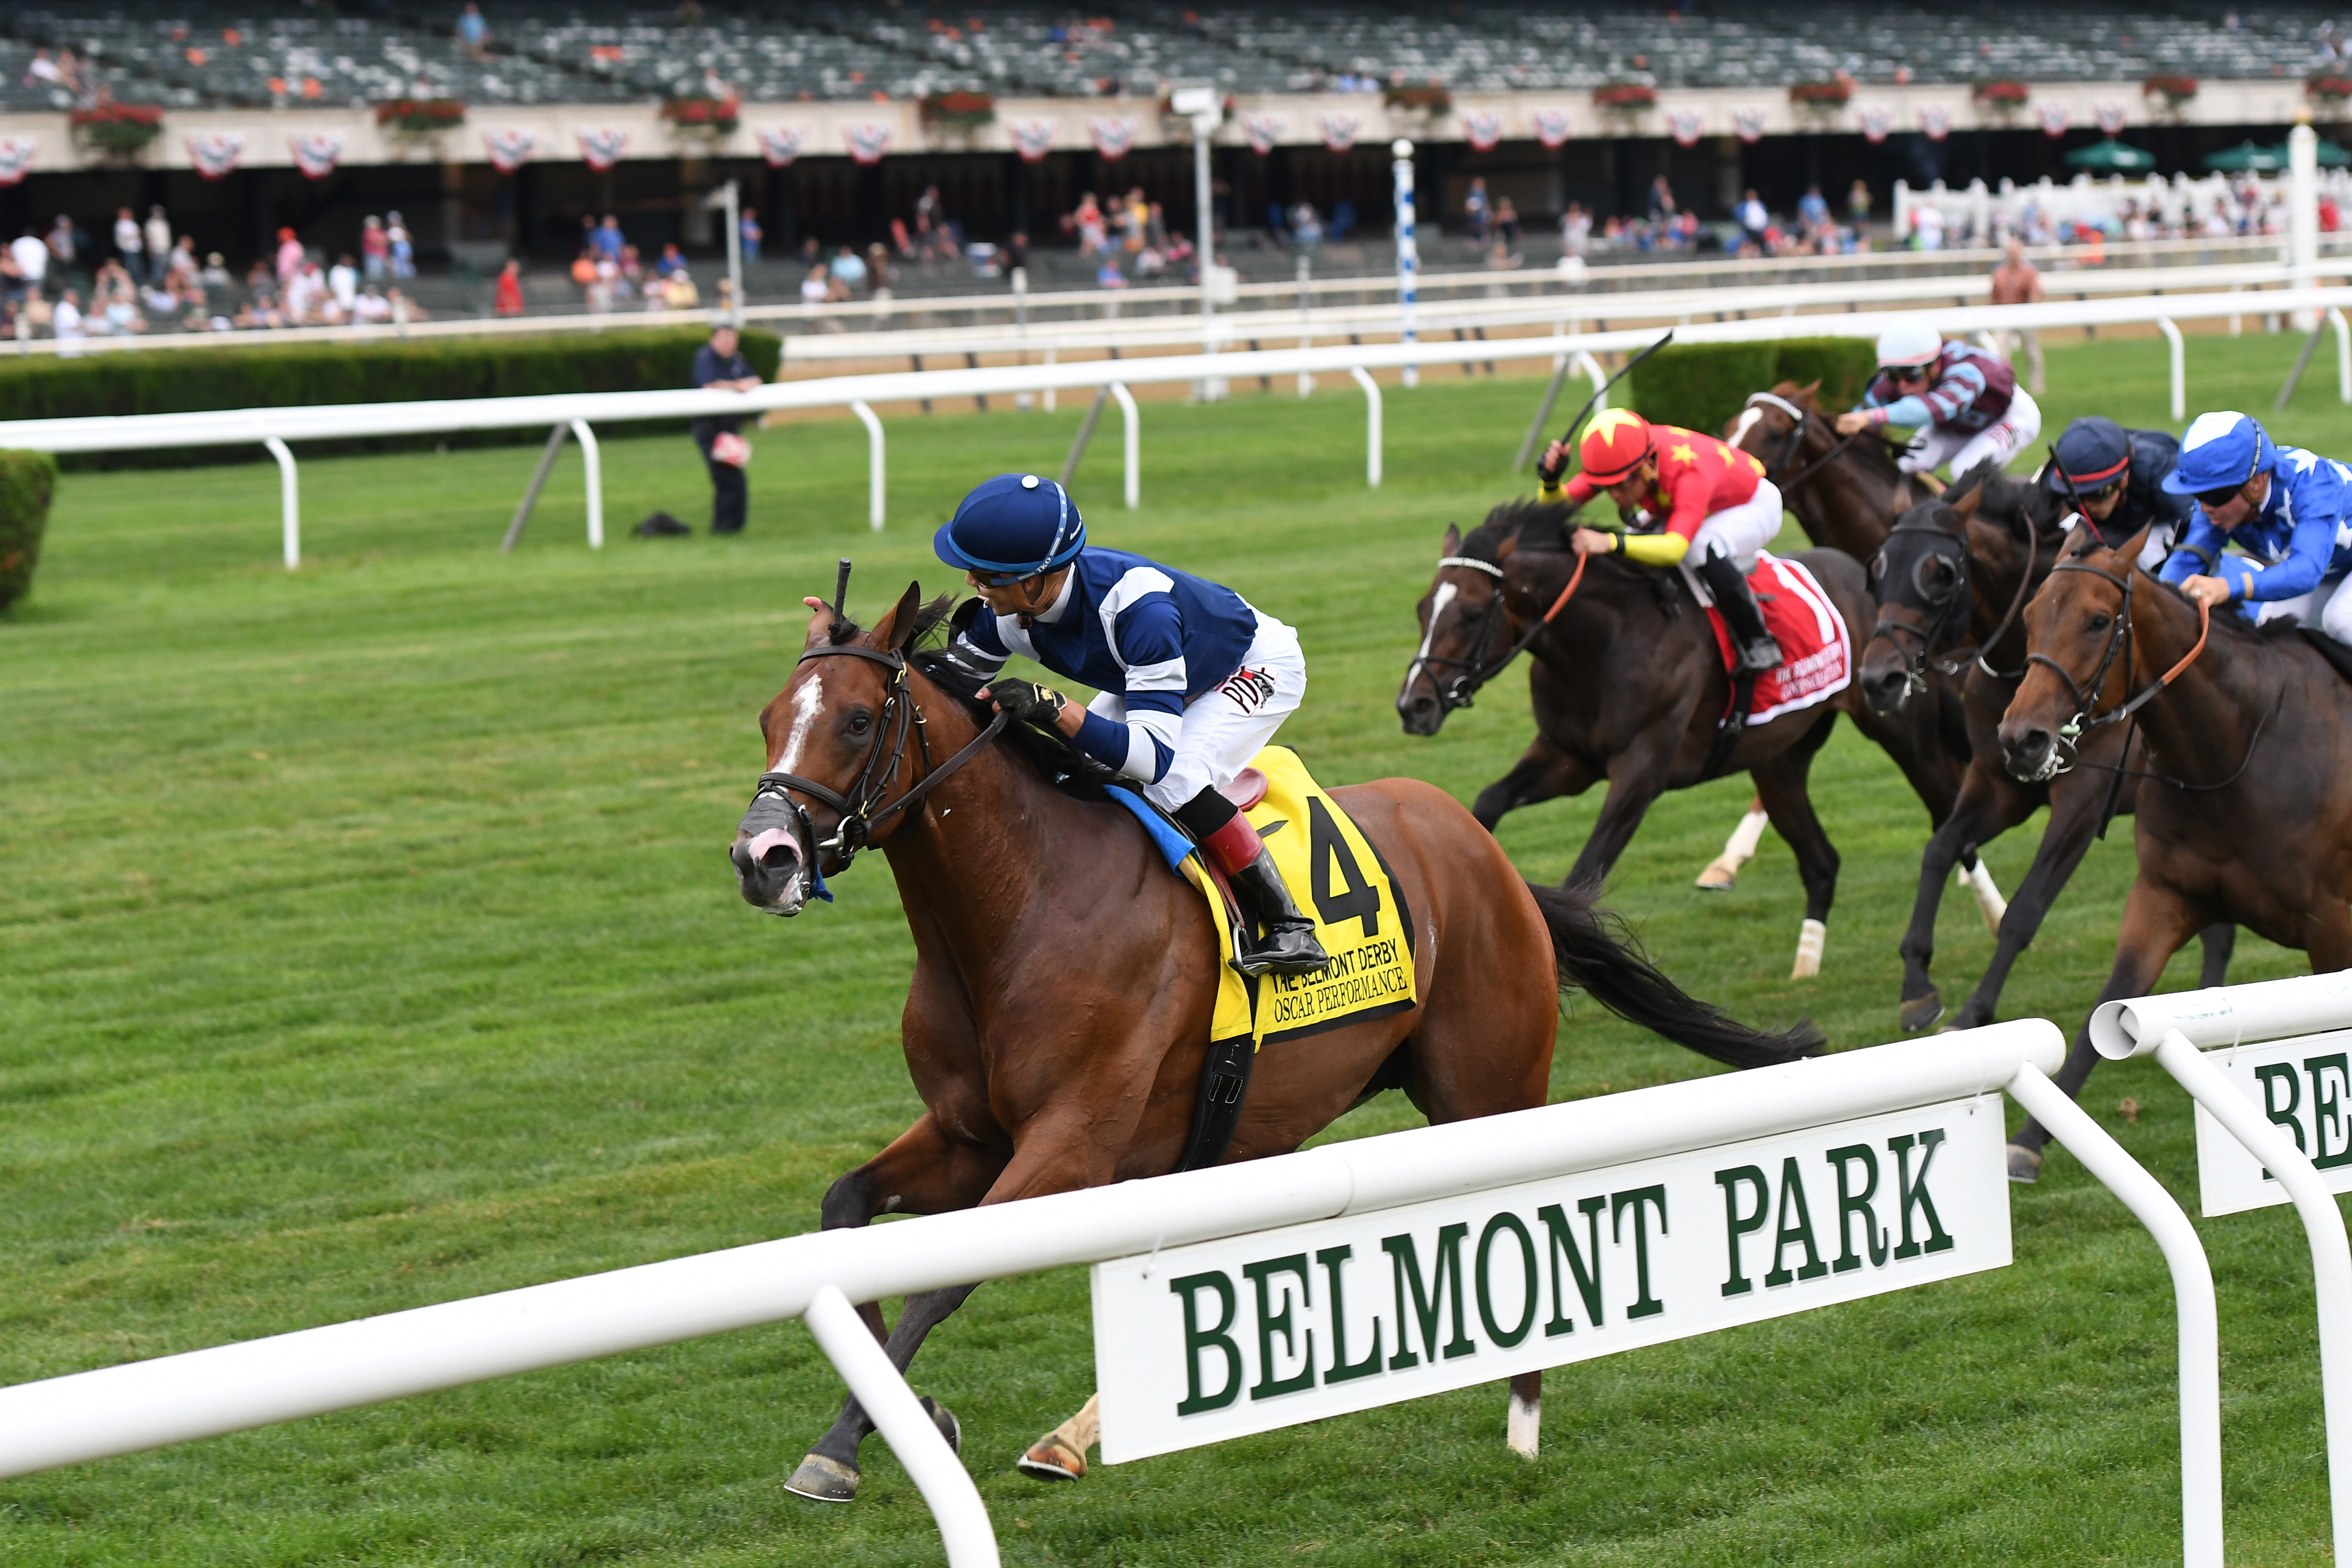 Oscar Performace wins the Grade I Belmont Derby in wire-to-wire fashion (photo via Annette Jasko/NYRA).